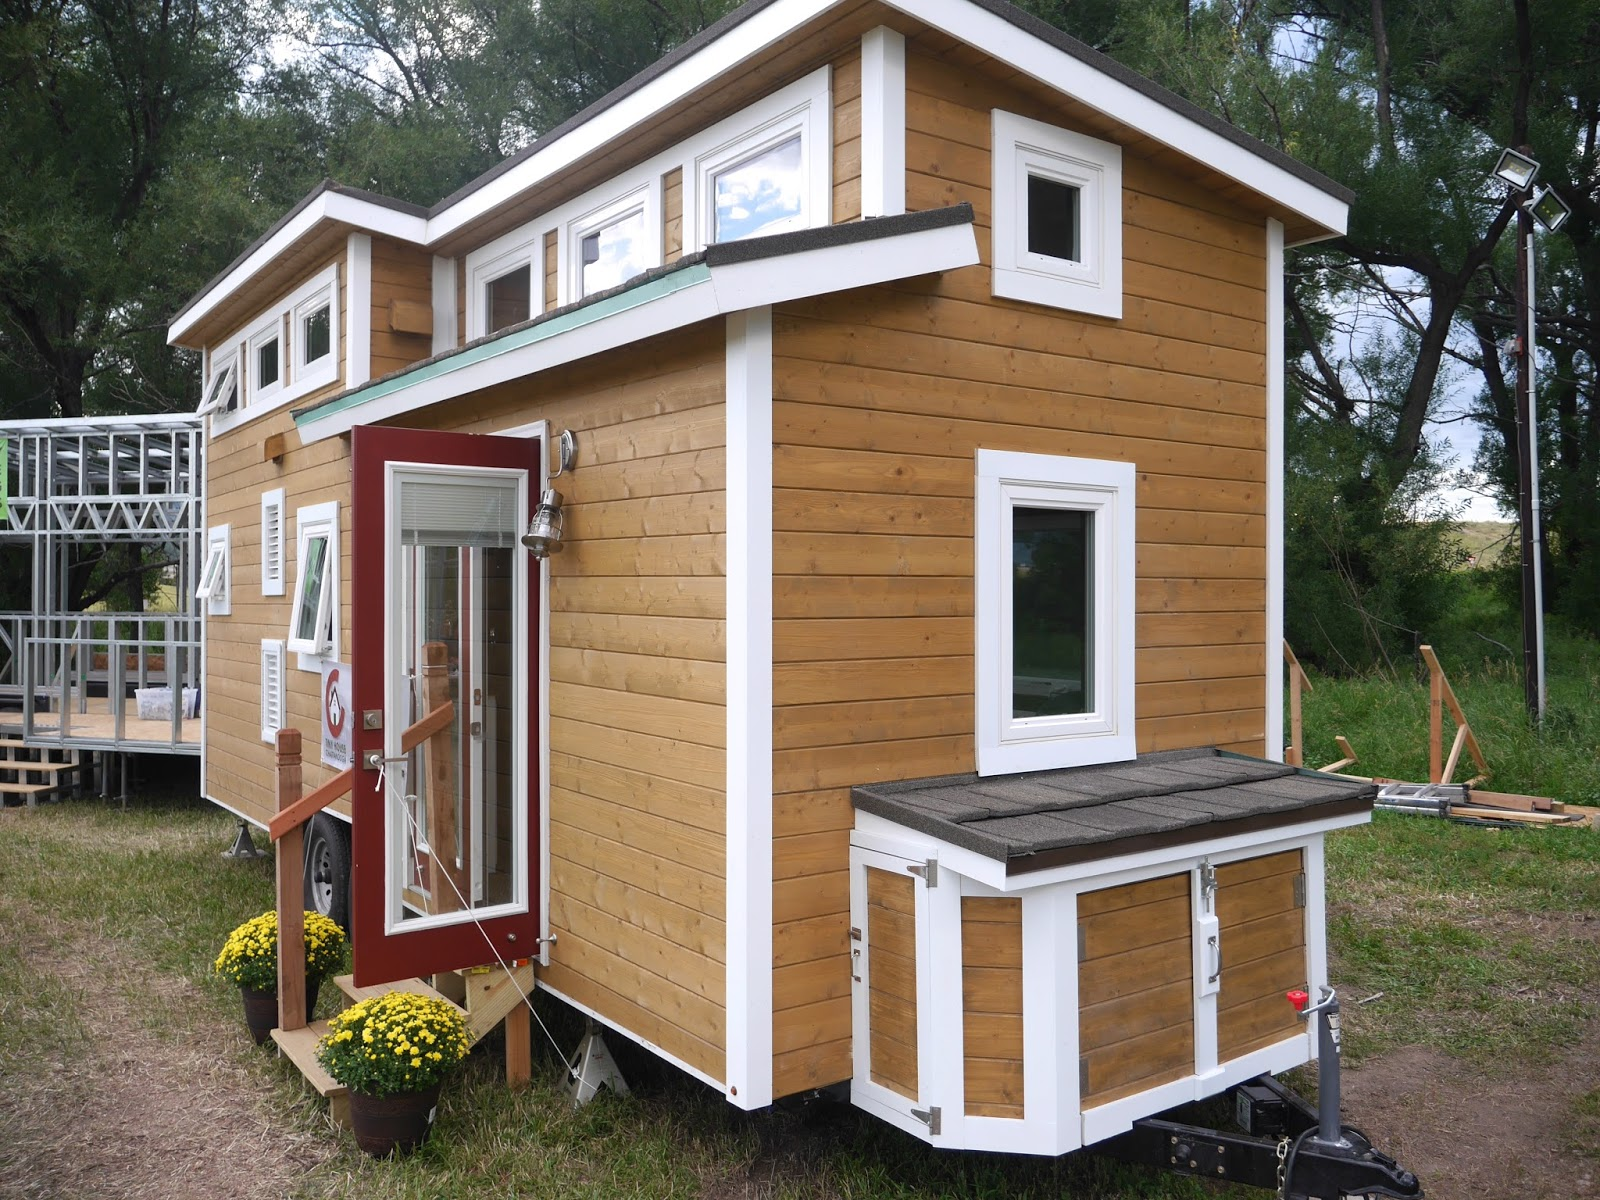 Relaxshacks Com A Luxury Tiny House On Wheels And Its